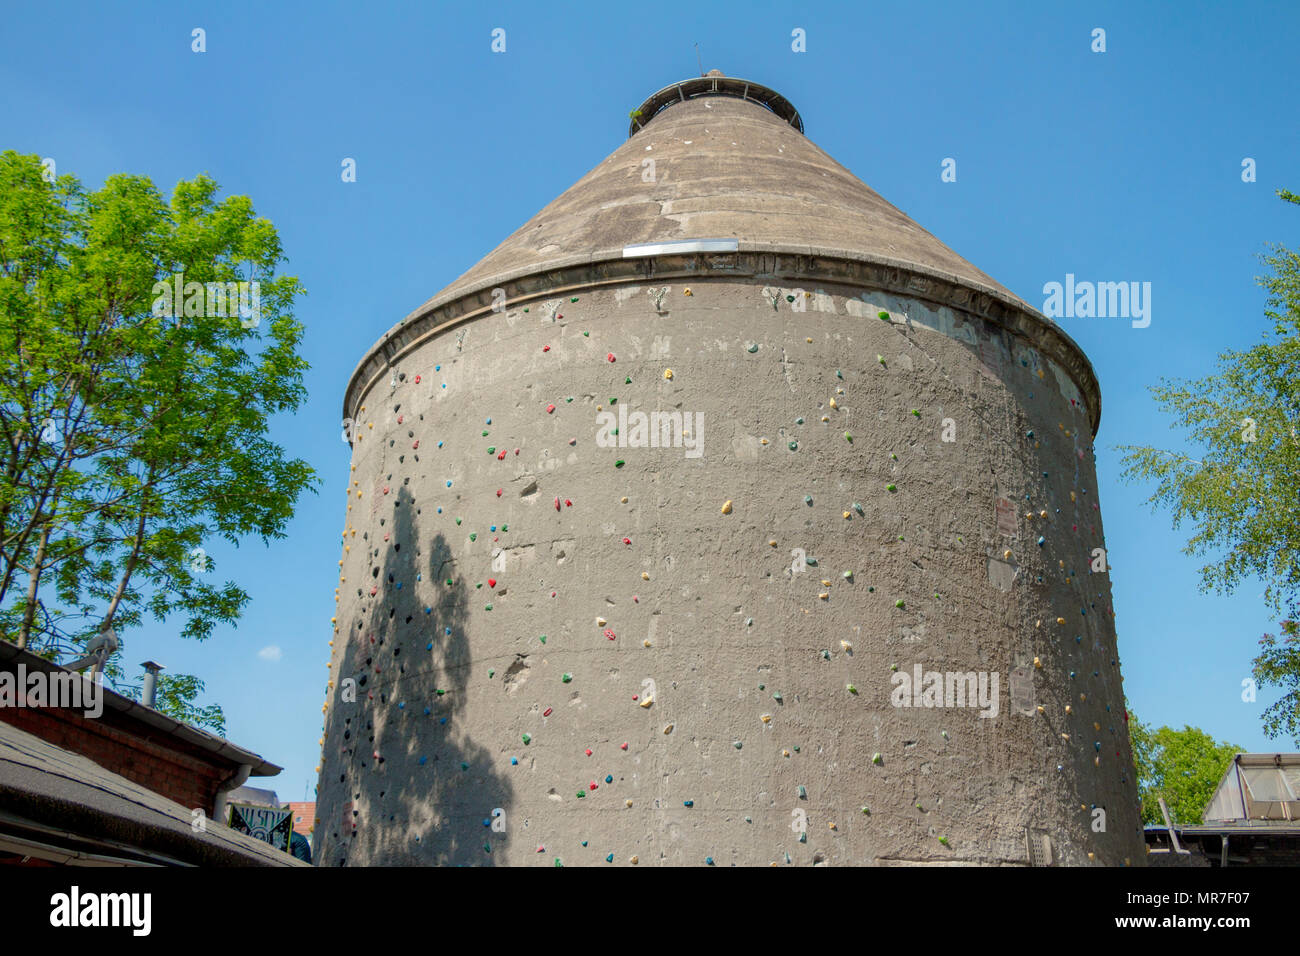 Climbing Wall on an old building in Kulturzentrum RAW Tempel at the city of berlin. - Stock Image